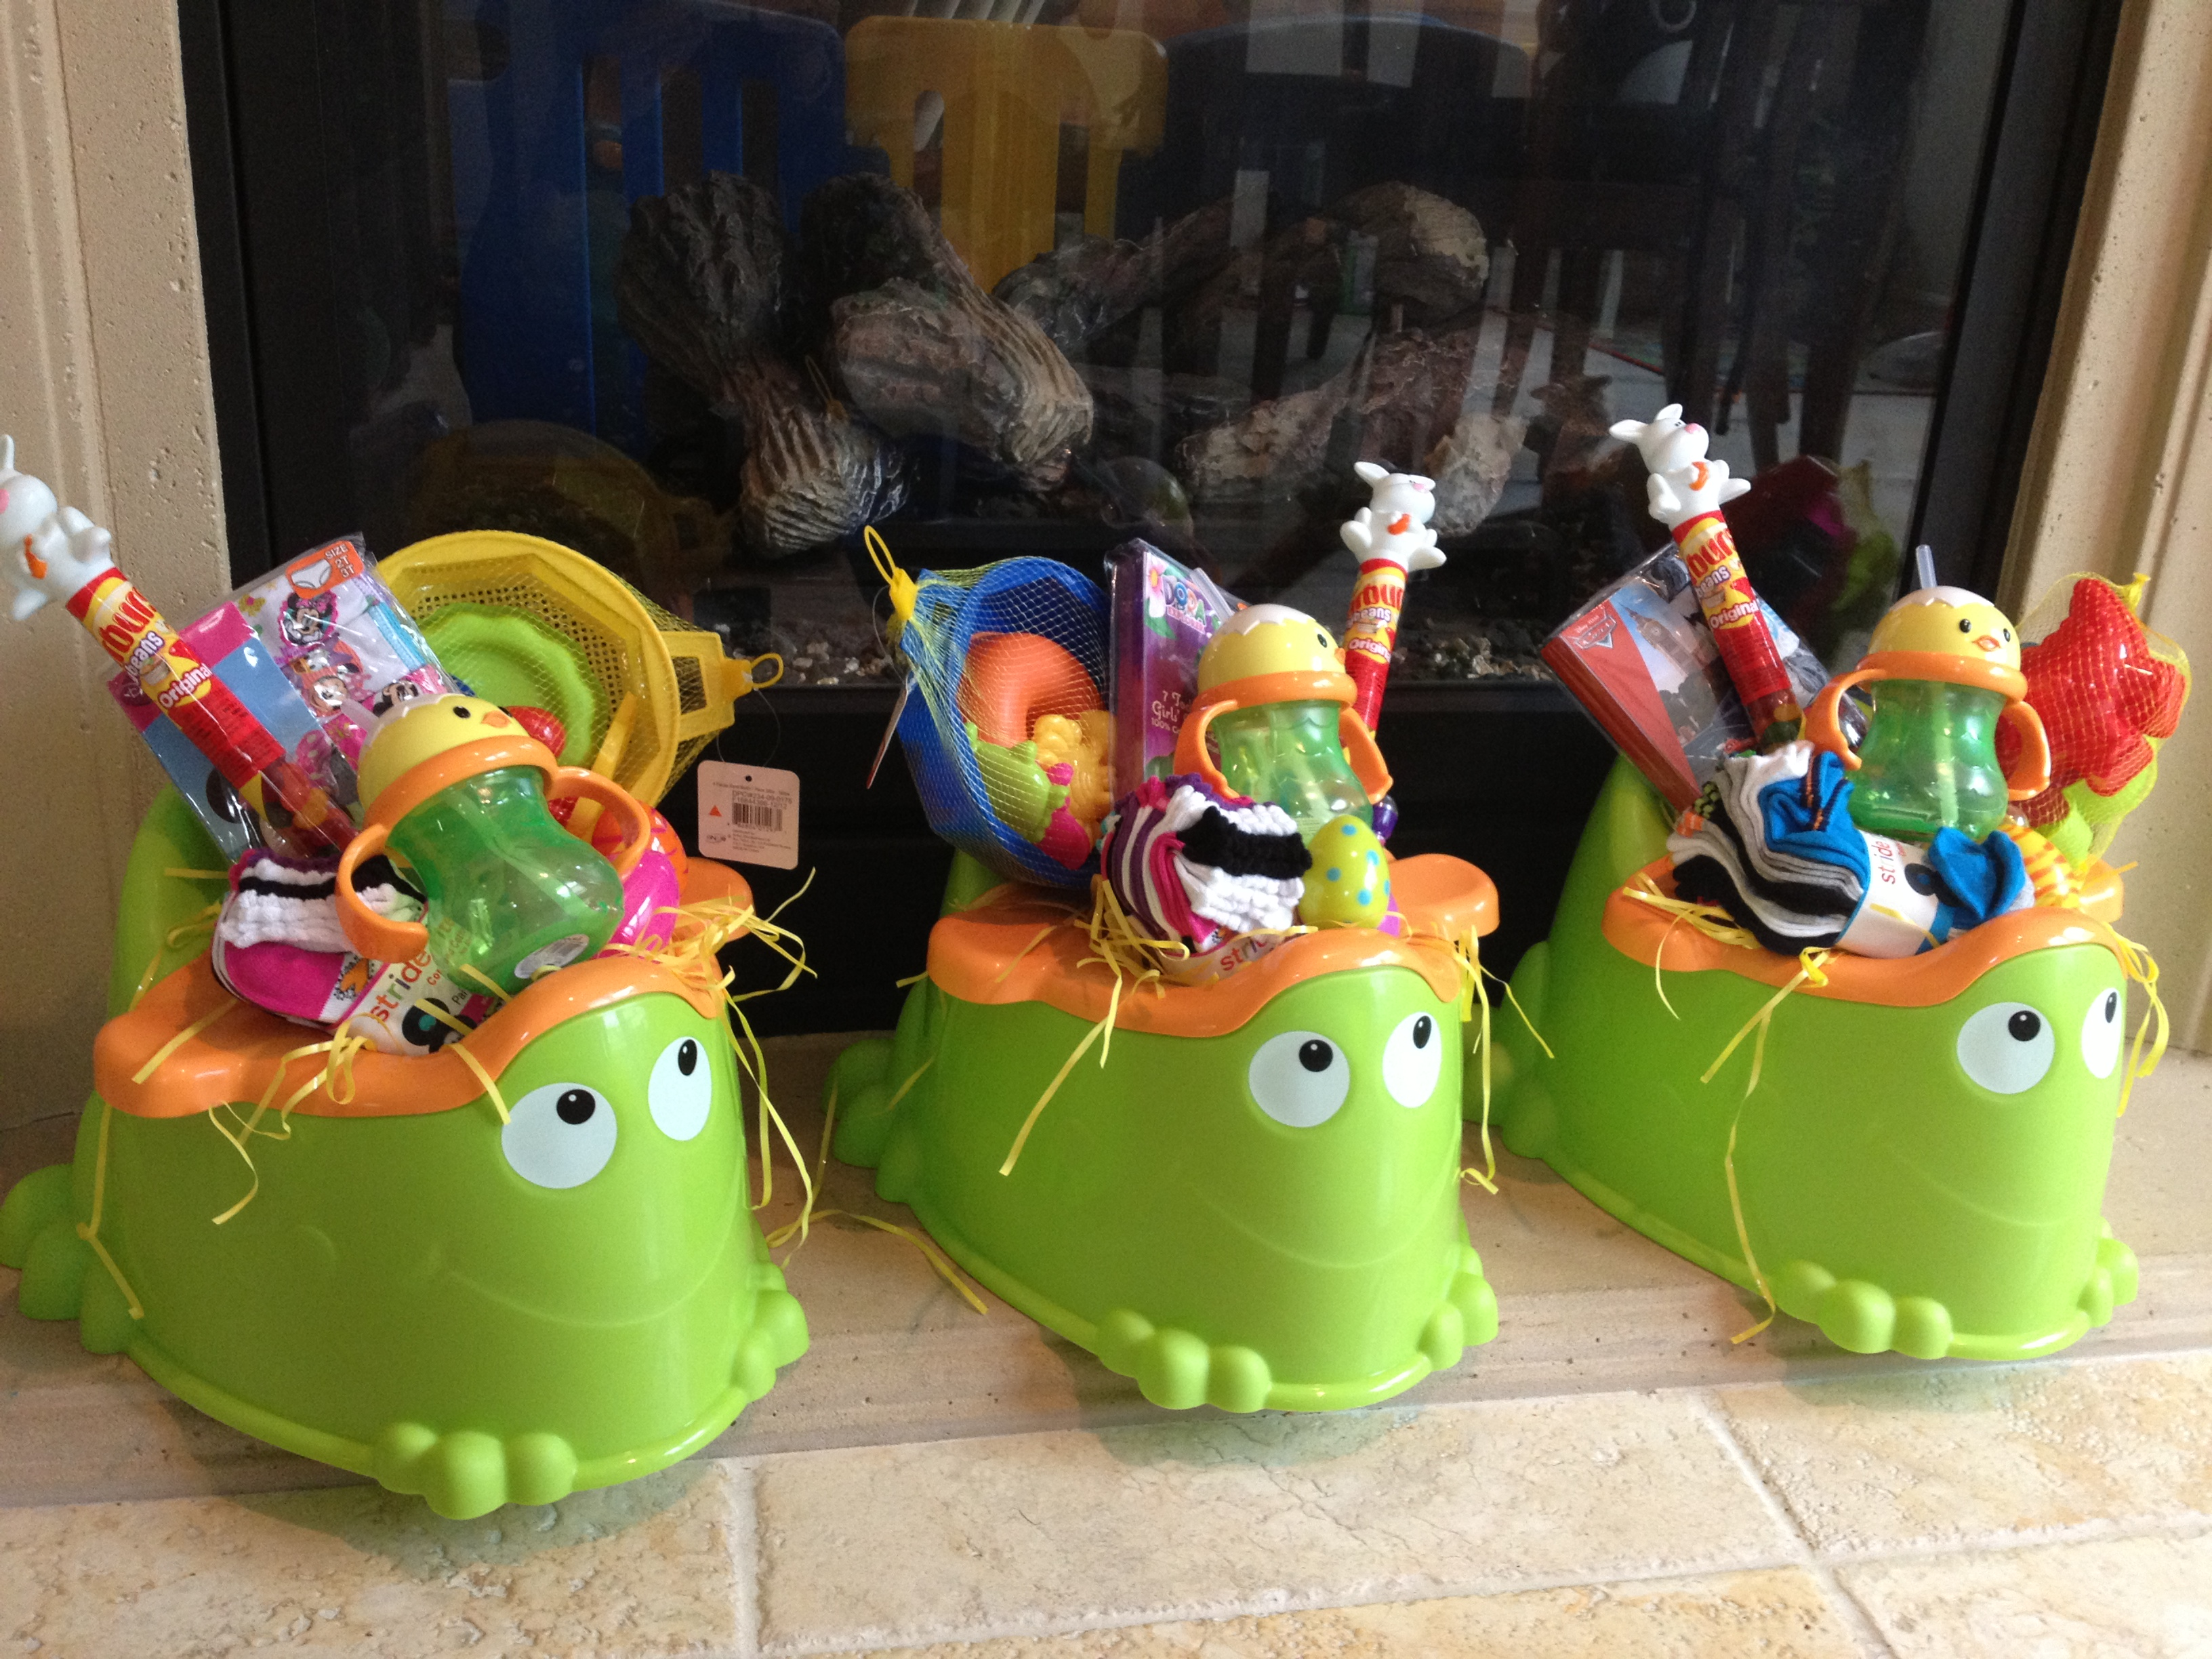 Make your own umbrella easter baskets non candy centered allergy potty training easter baskets negle Images